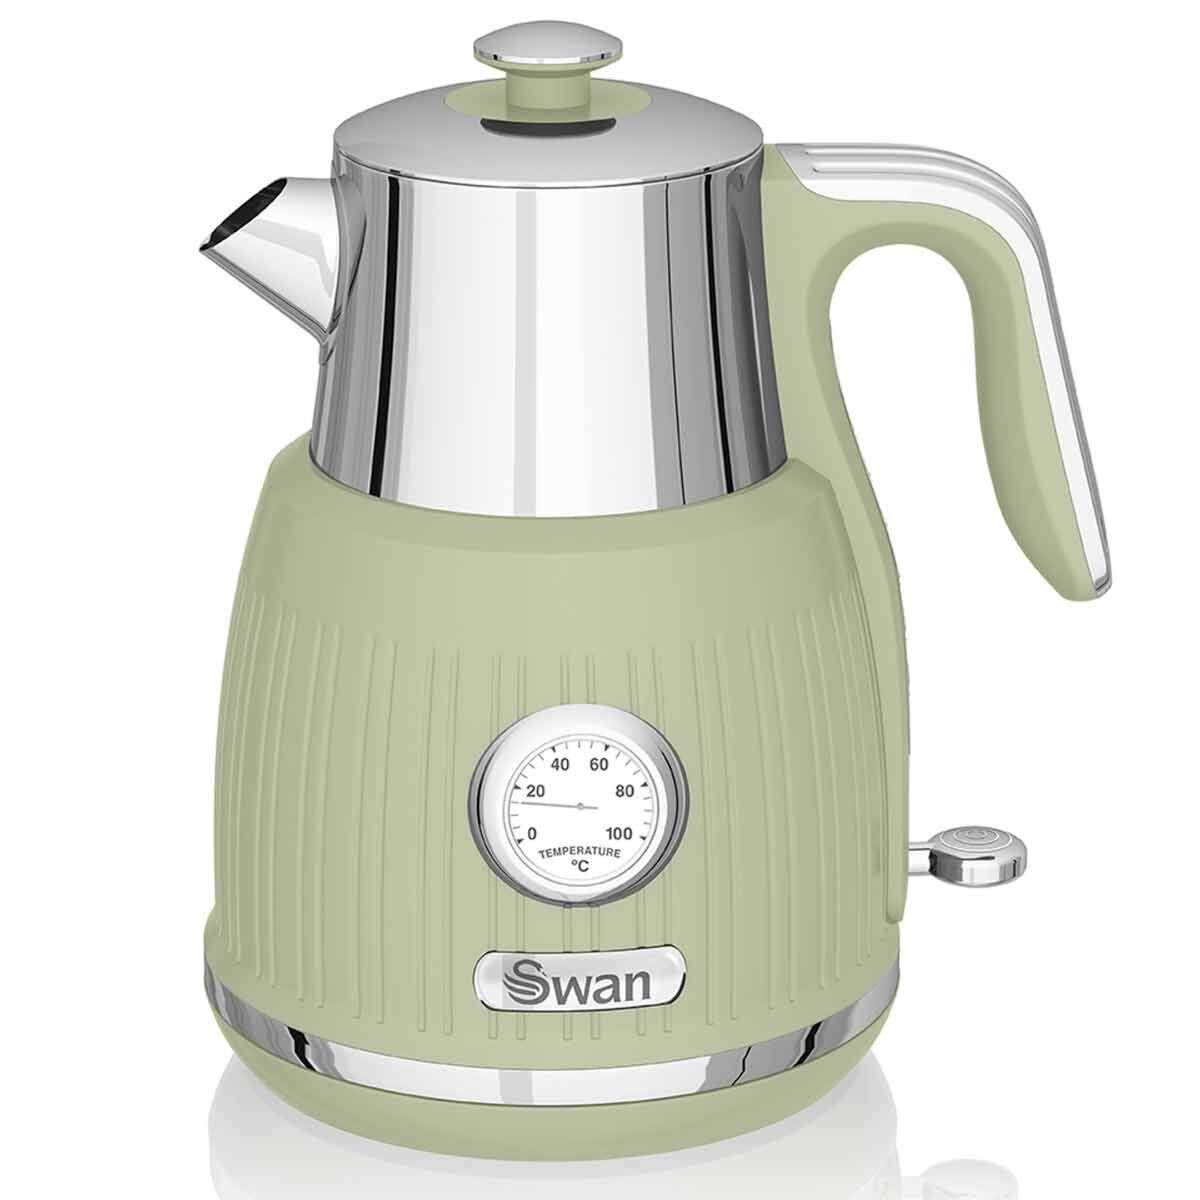 Swan Retro Jug Kettle with Pressure Gauge 1.5L